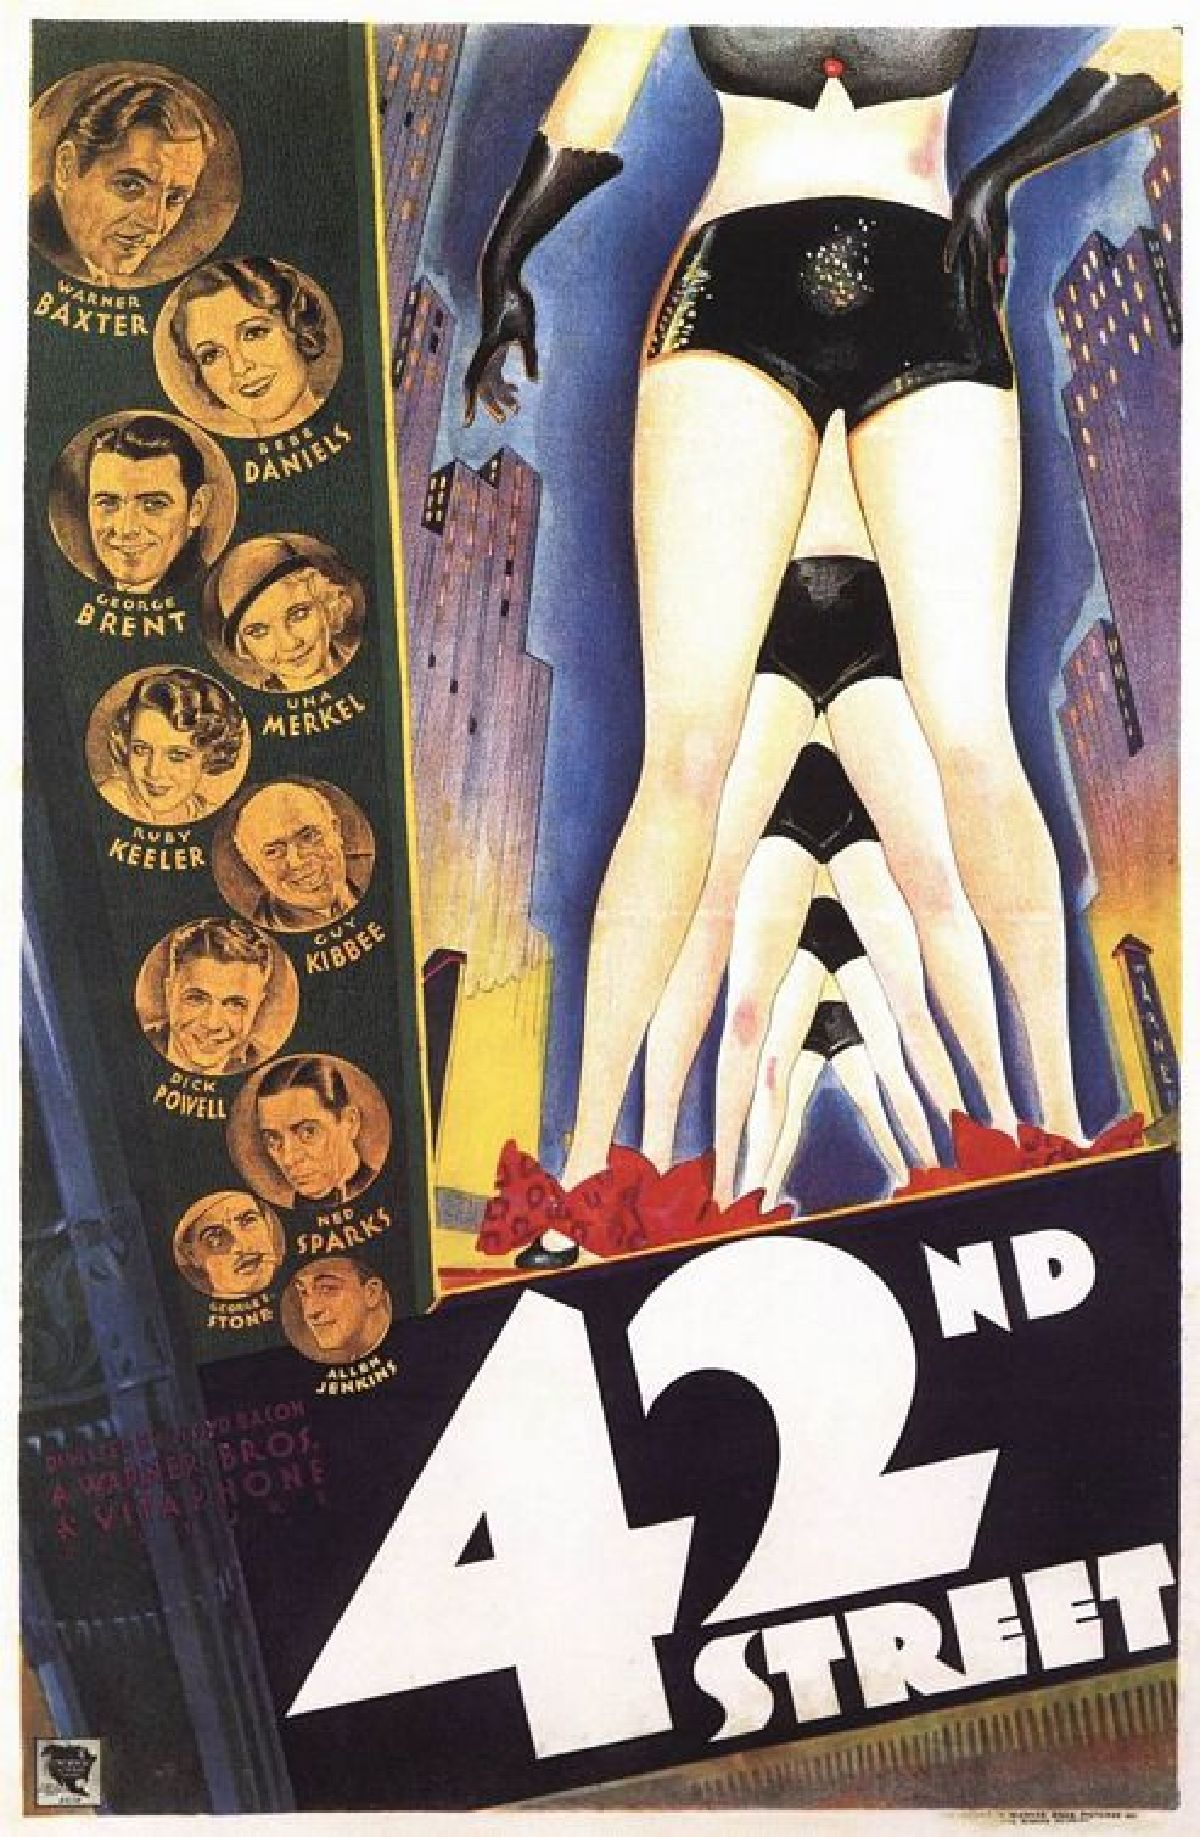 '42nd Street' movie poster